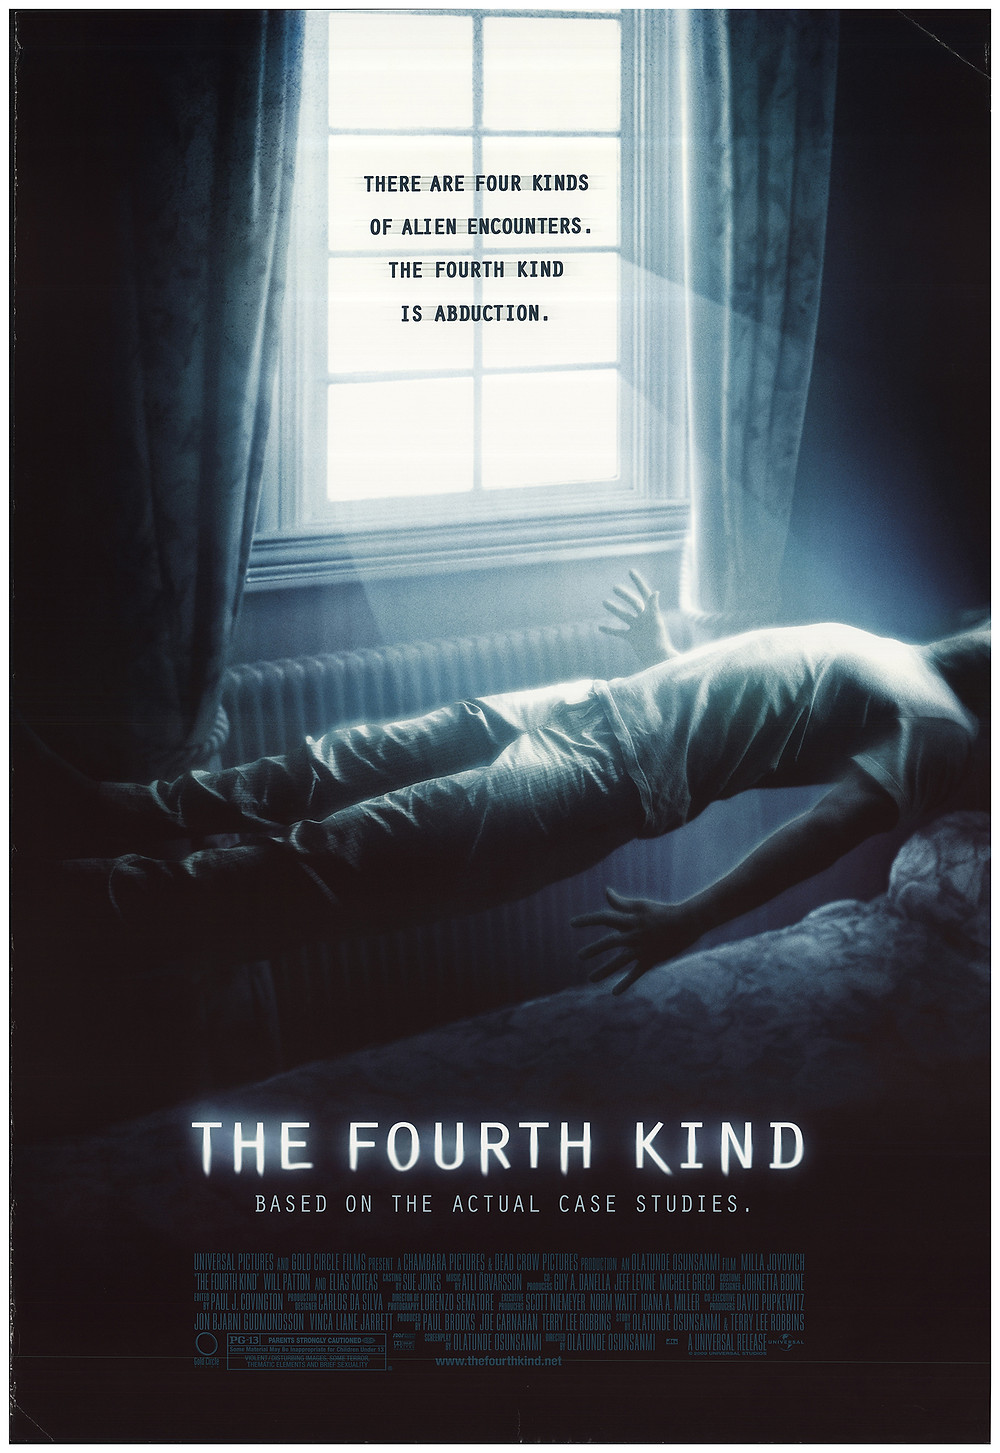 the fourth kind horror movie found footage aliens hypnosis